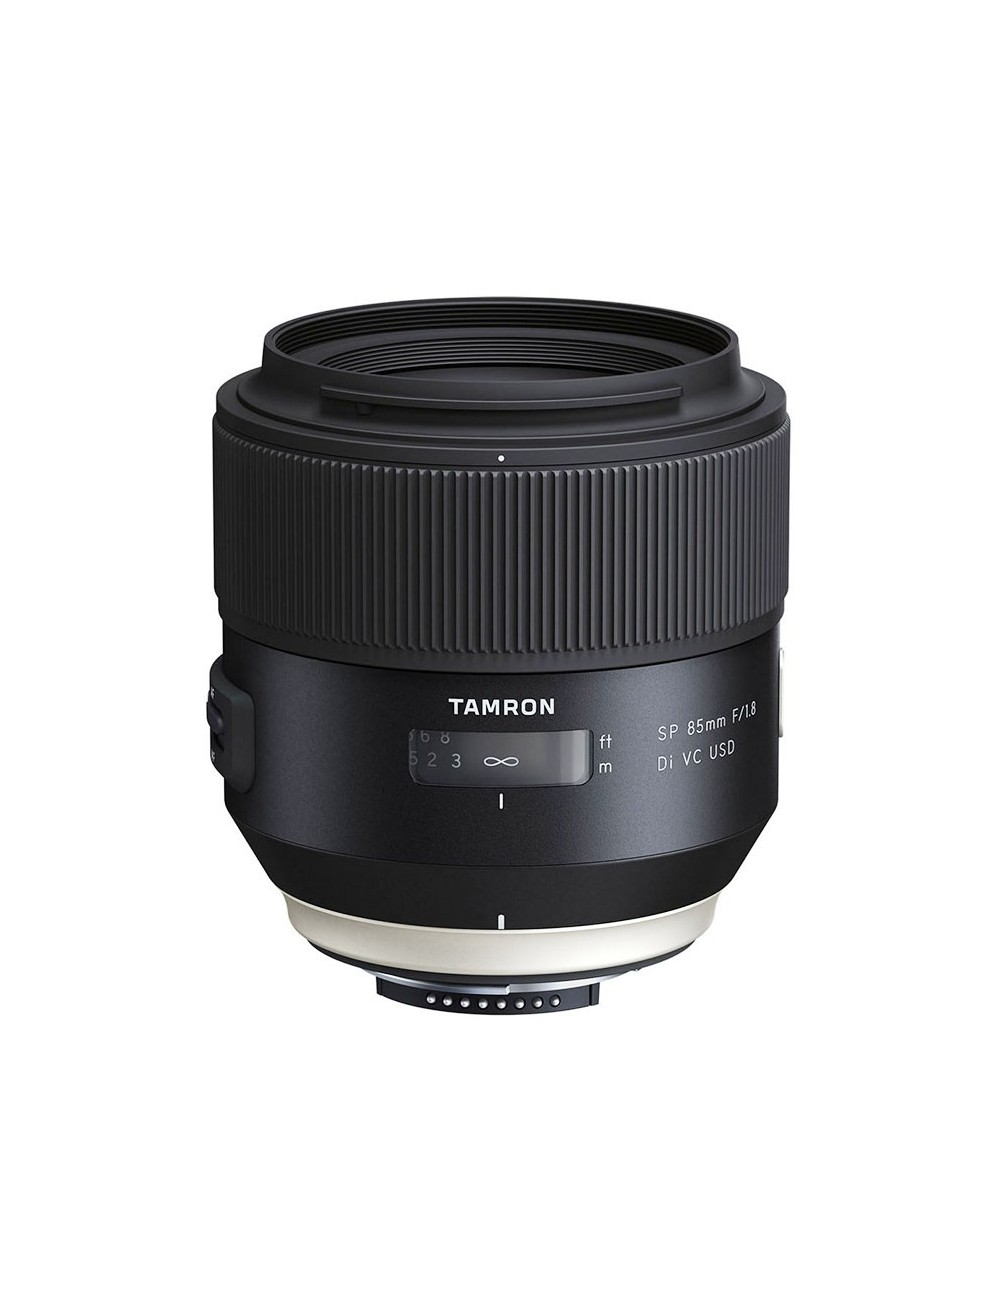 Tamron SP 85mm f/1.8 Di VC USD Canon